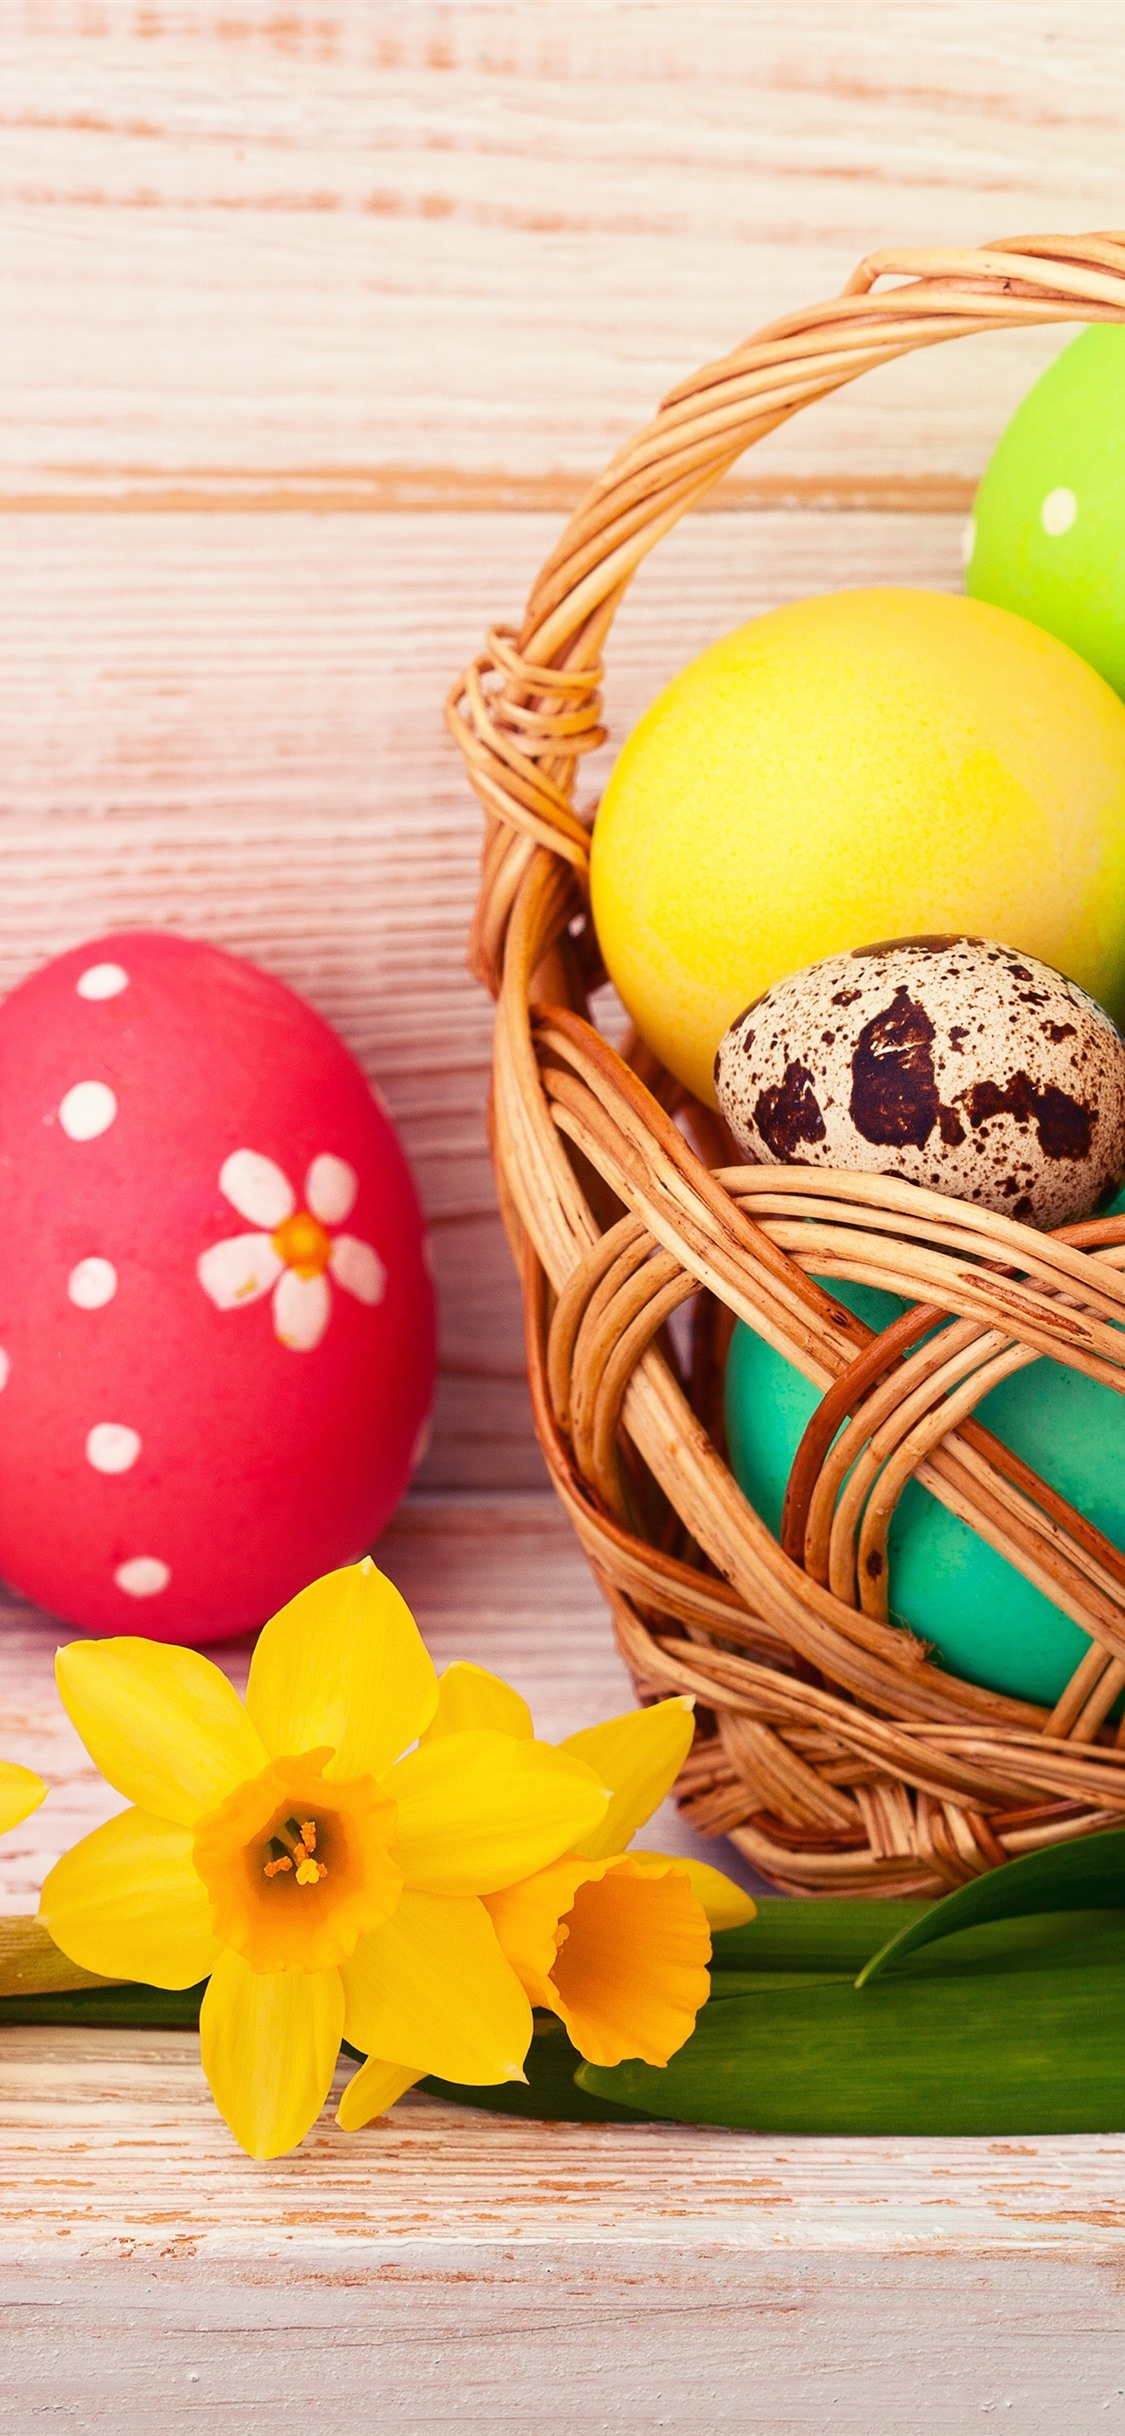 4k Happy Easter Wallpapers High Quality Download Free